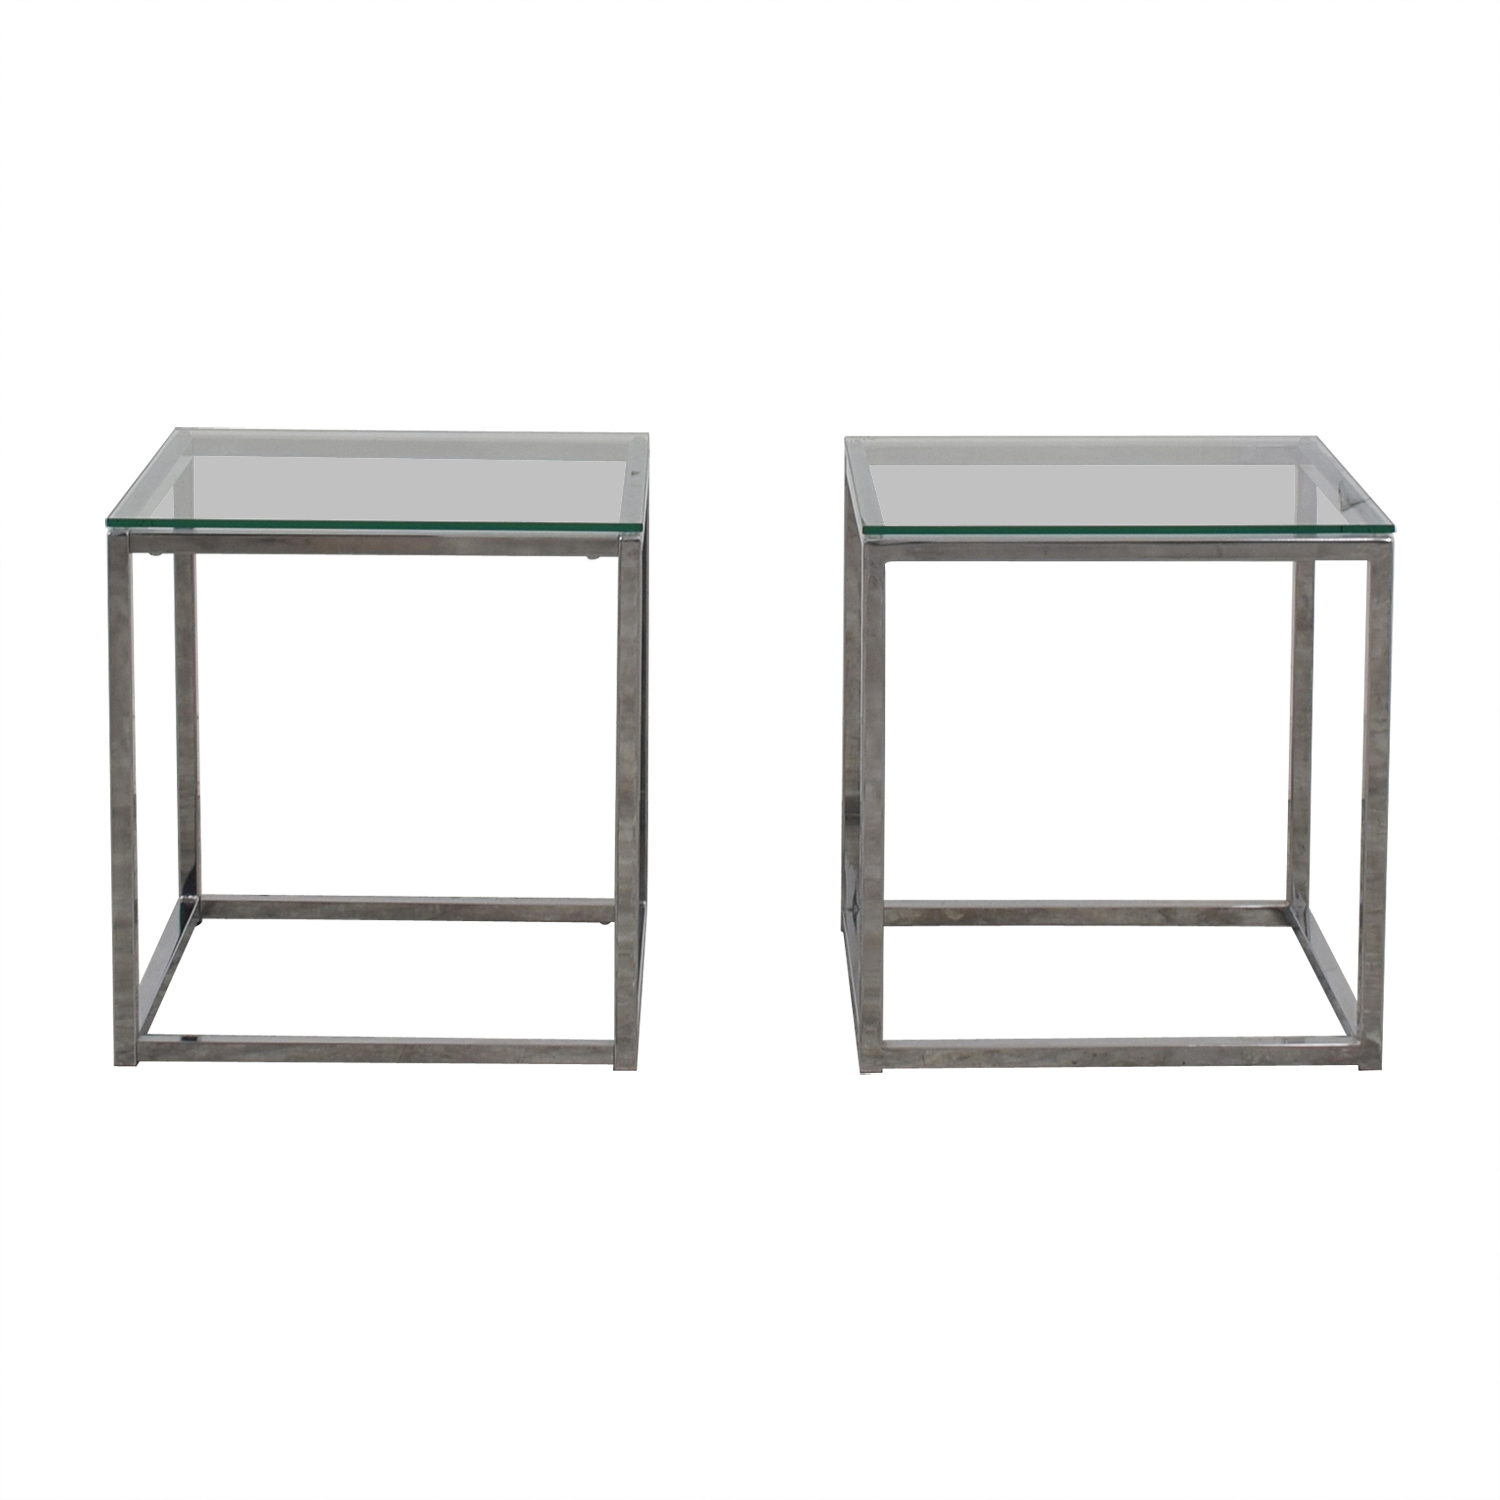 CB2 CB2 Glass Side Tables used